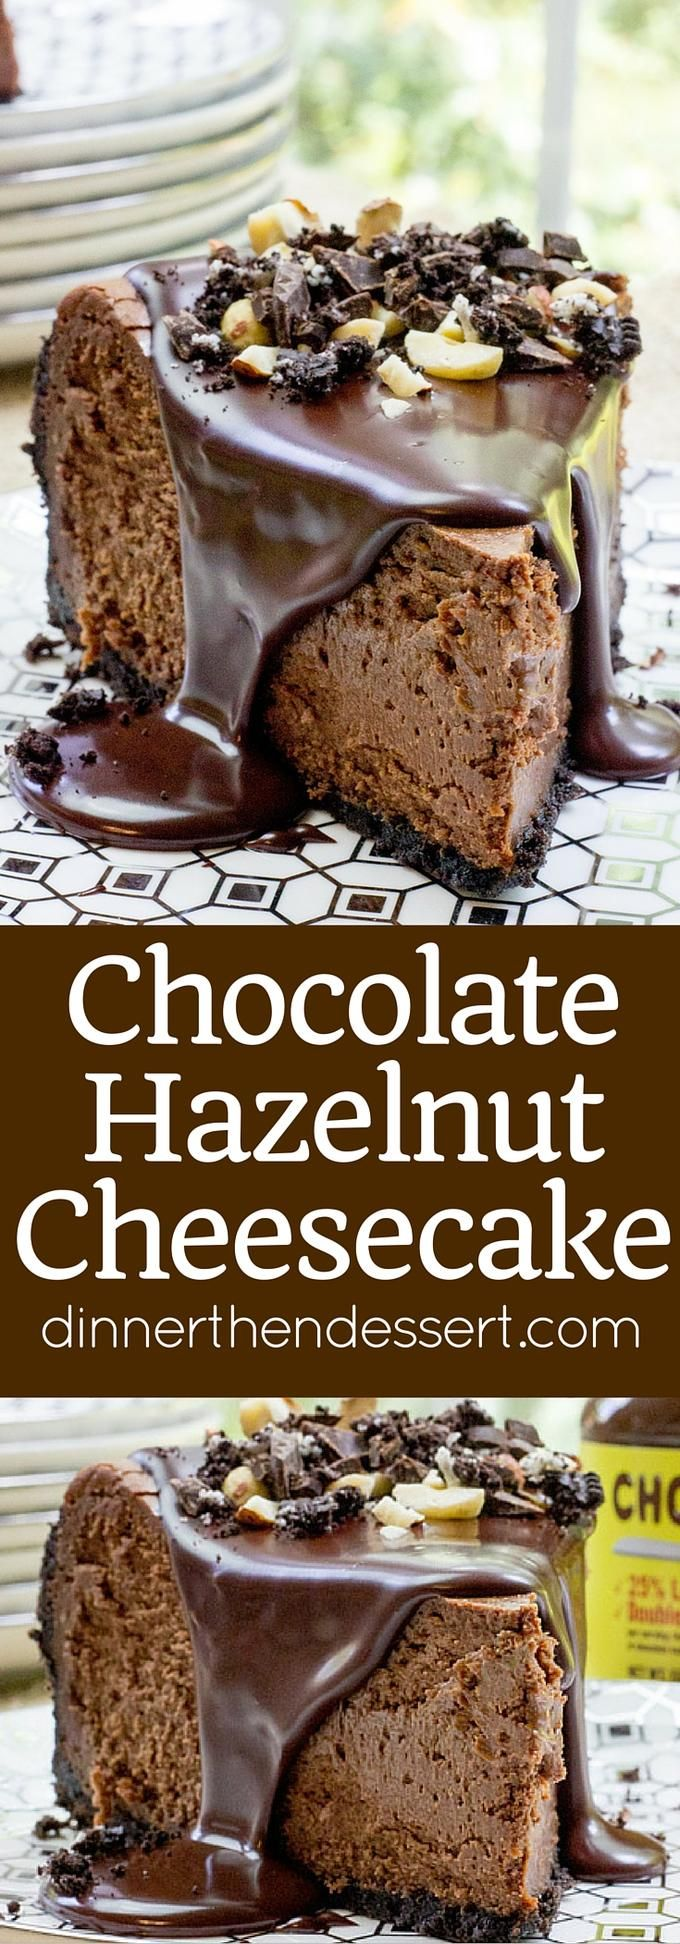 Rich Chocolate Hazelnut Cheesecake made with Chocmeister Milk Chocolatey Hazelnut Spread, a chocolate cookie crust and a thick, glossy chocolate ganache.